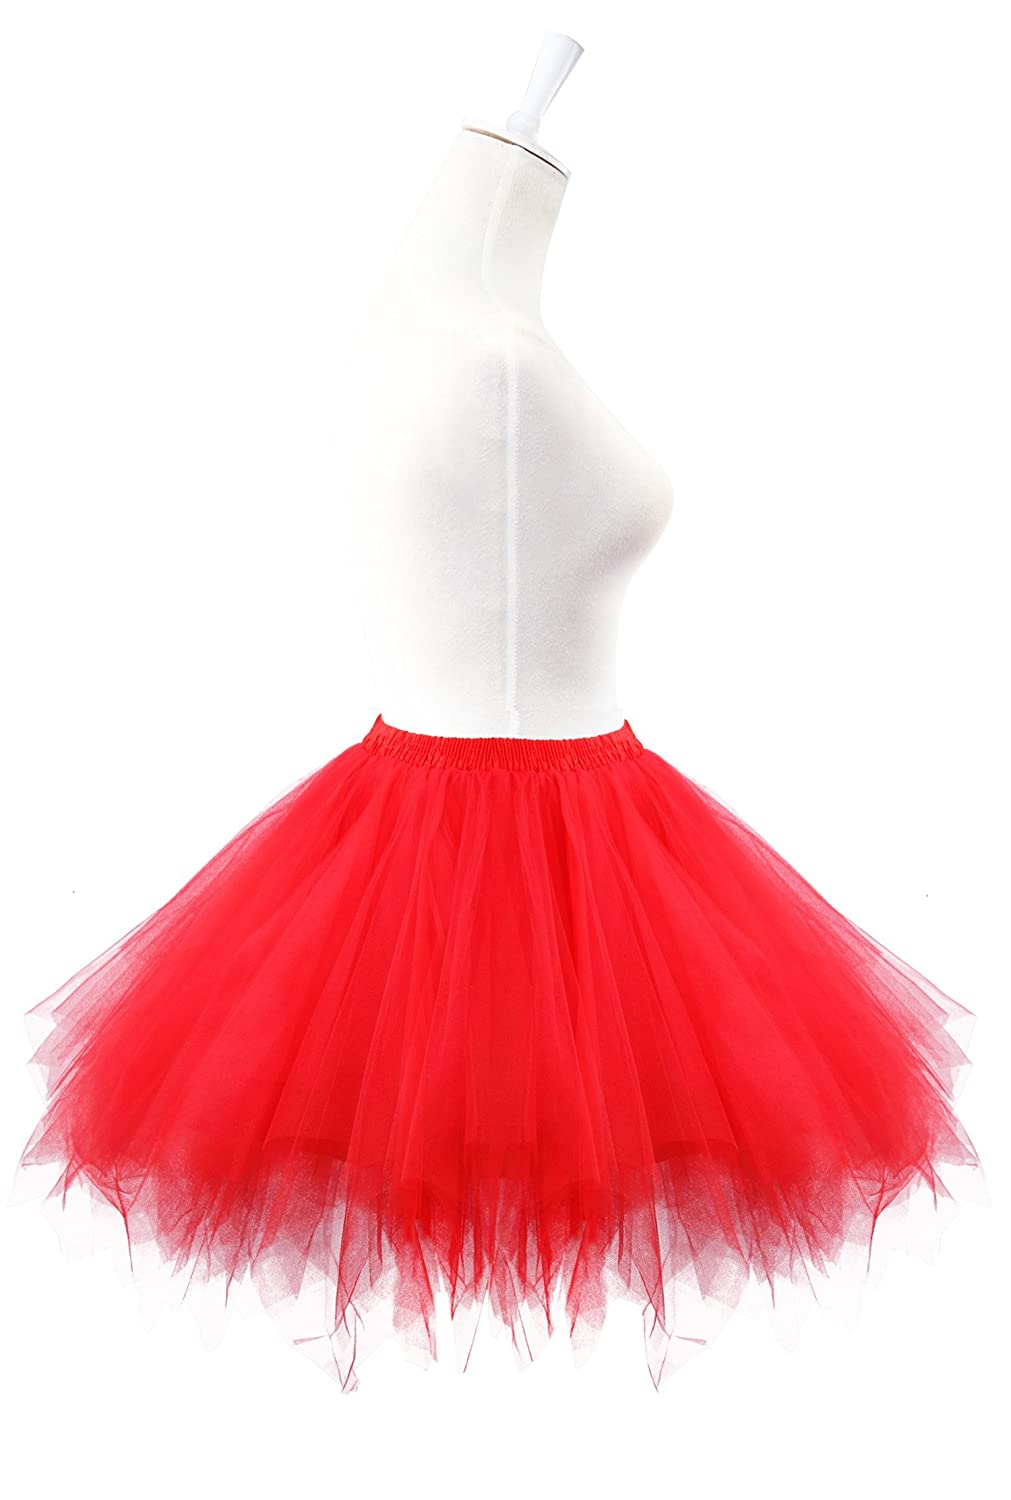 c2caff426 Amazon.com: Acecharming Girl's Ballet Tutu Skirts Tulle Bubble Classic Prom  Ball Layered Underskirt(Red: Clothing